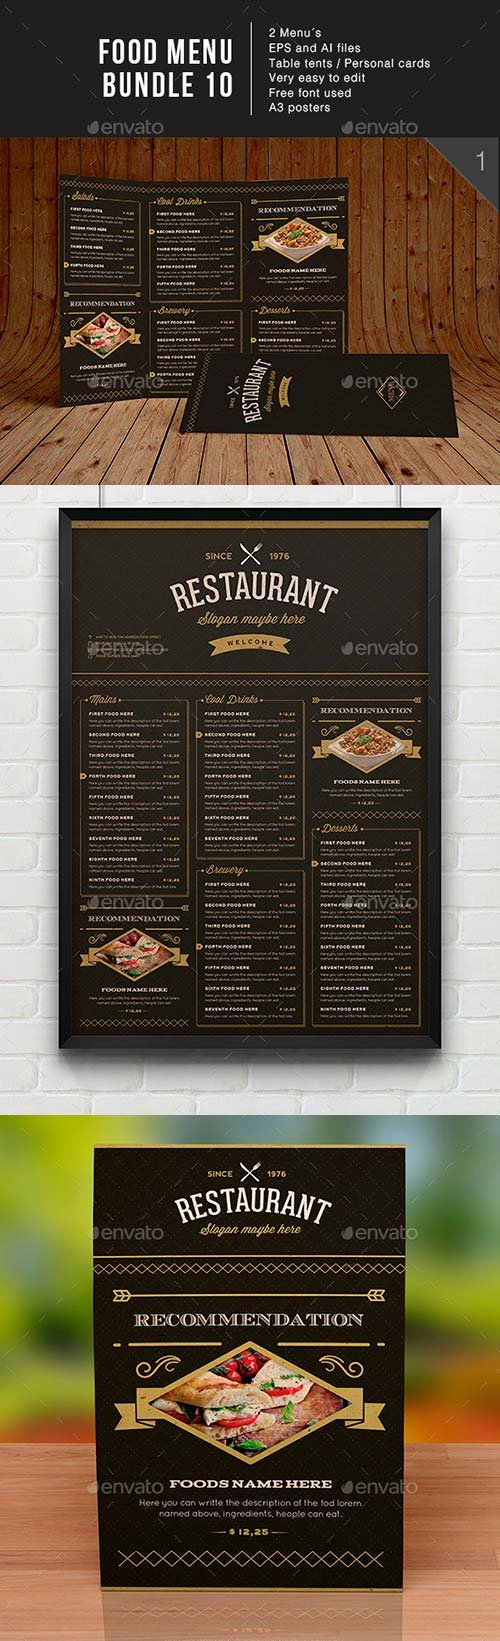 GraphicRiver Food Menu Bundle 10